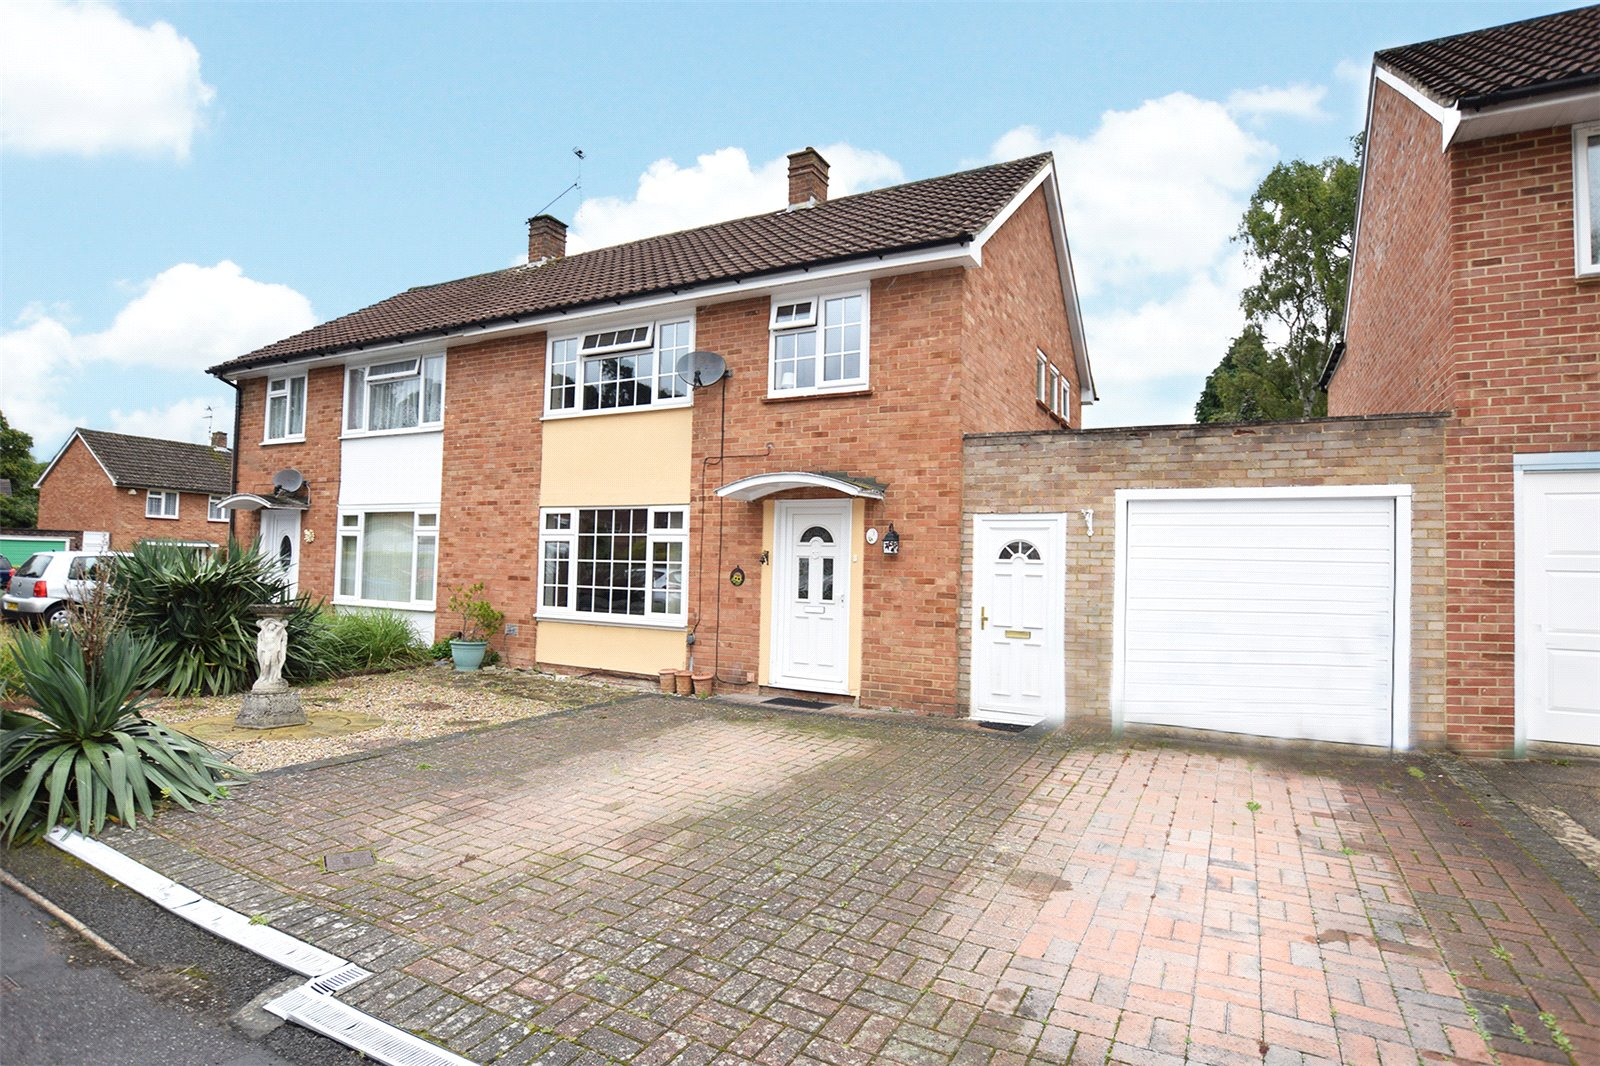 3 Bedrooms Semi Detached House for sale in Timline Green, Bracknell, Berkshire, RG12